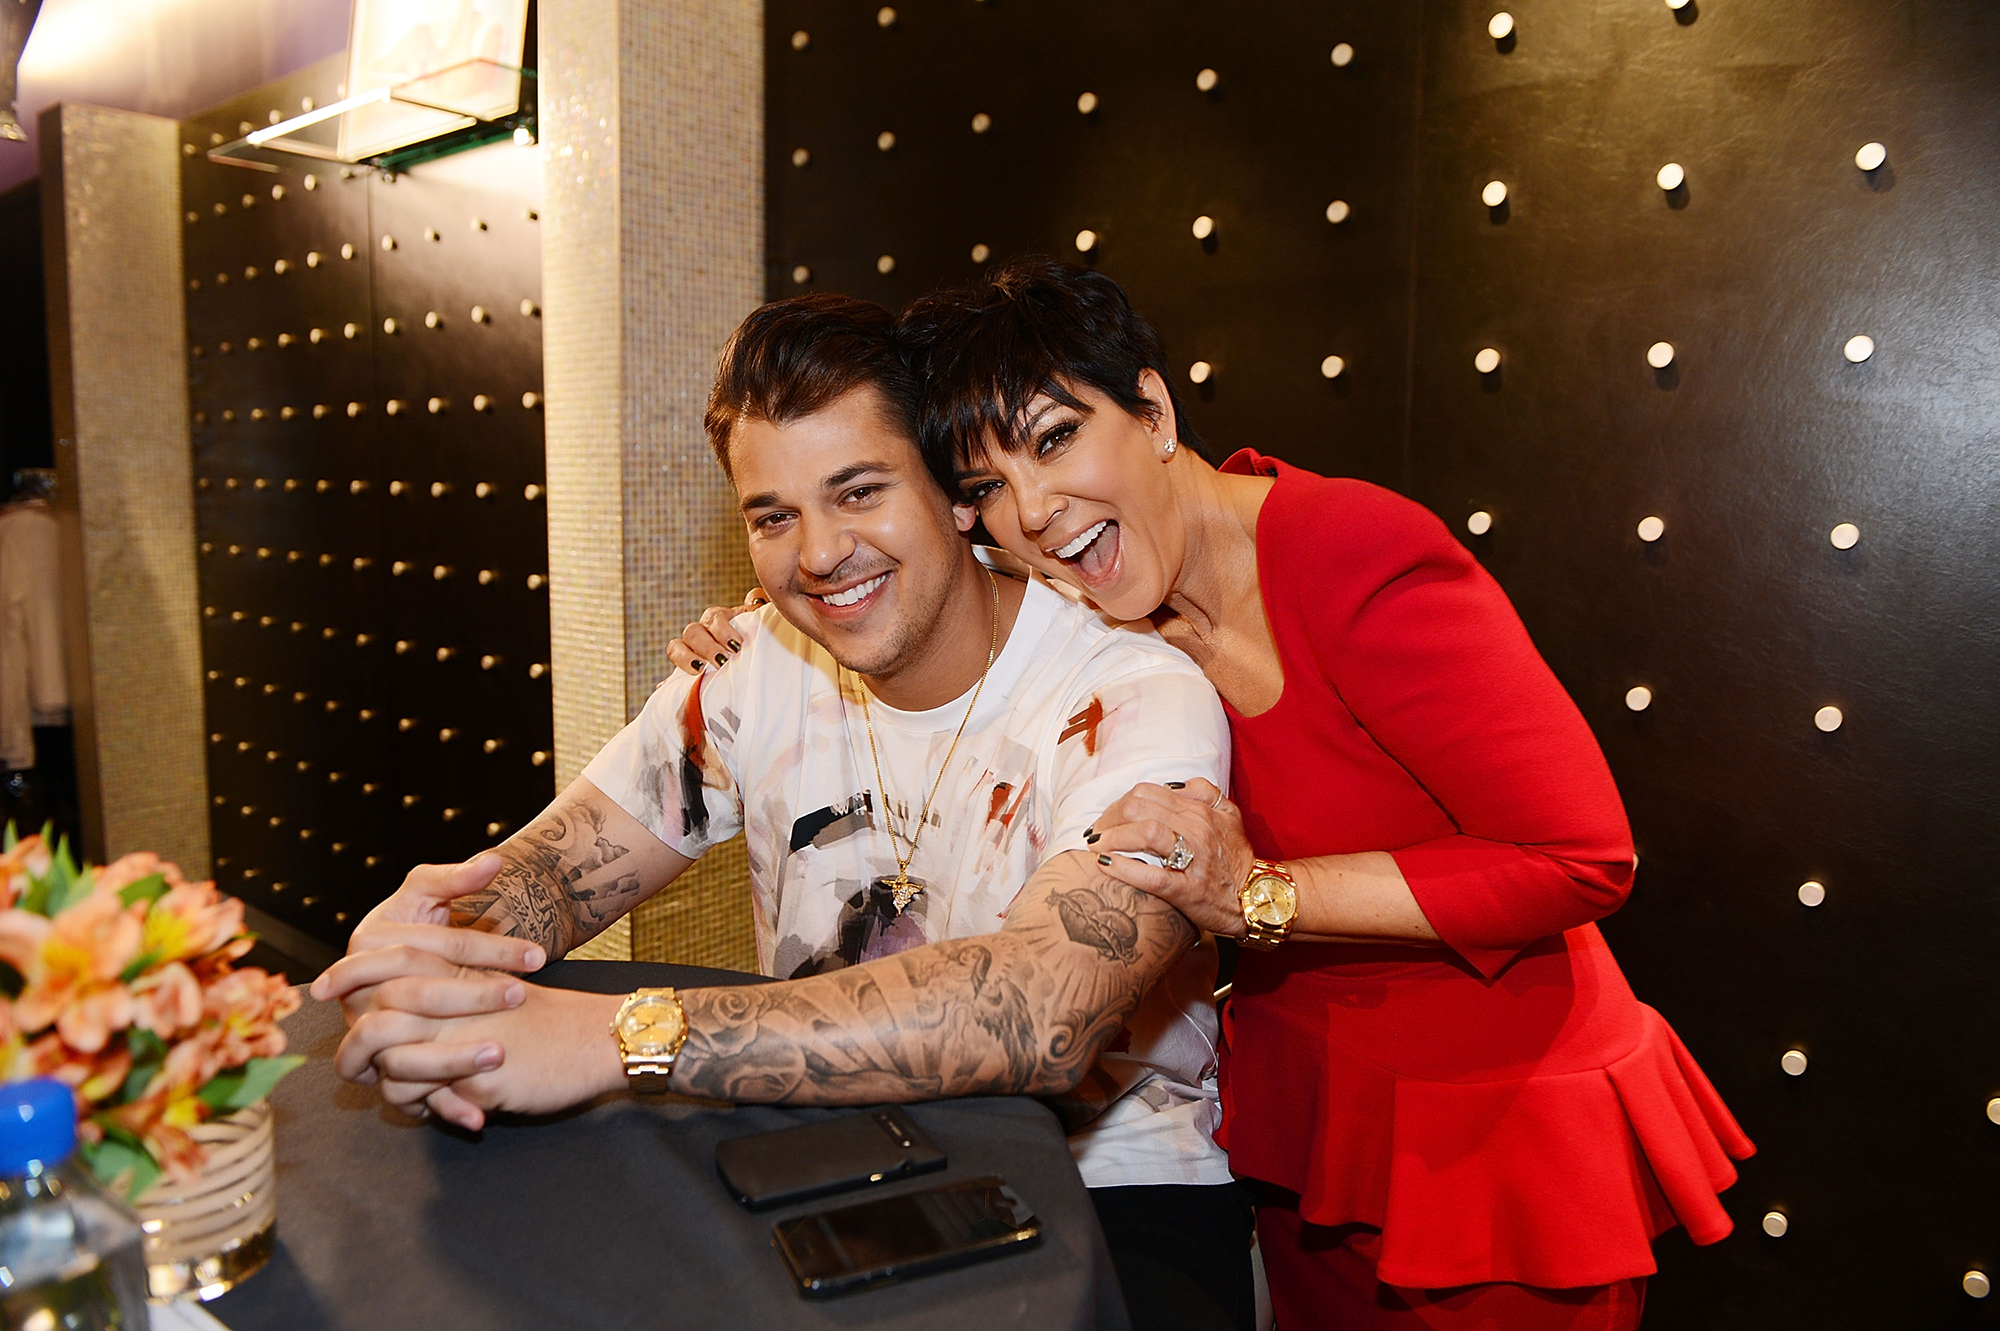 Rob Kardashian Will Return to 'Keeping Up With the Kardashians' in Season 16 - Rob Kardashian and Kris Jenner